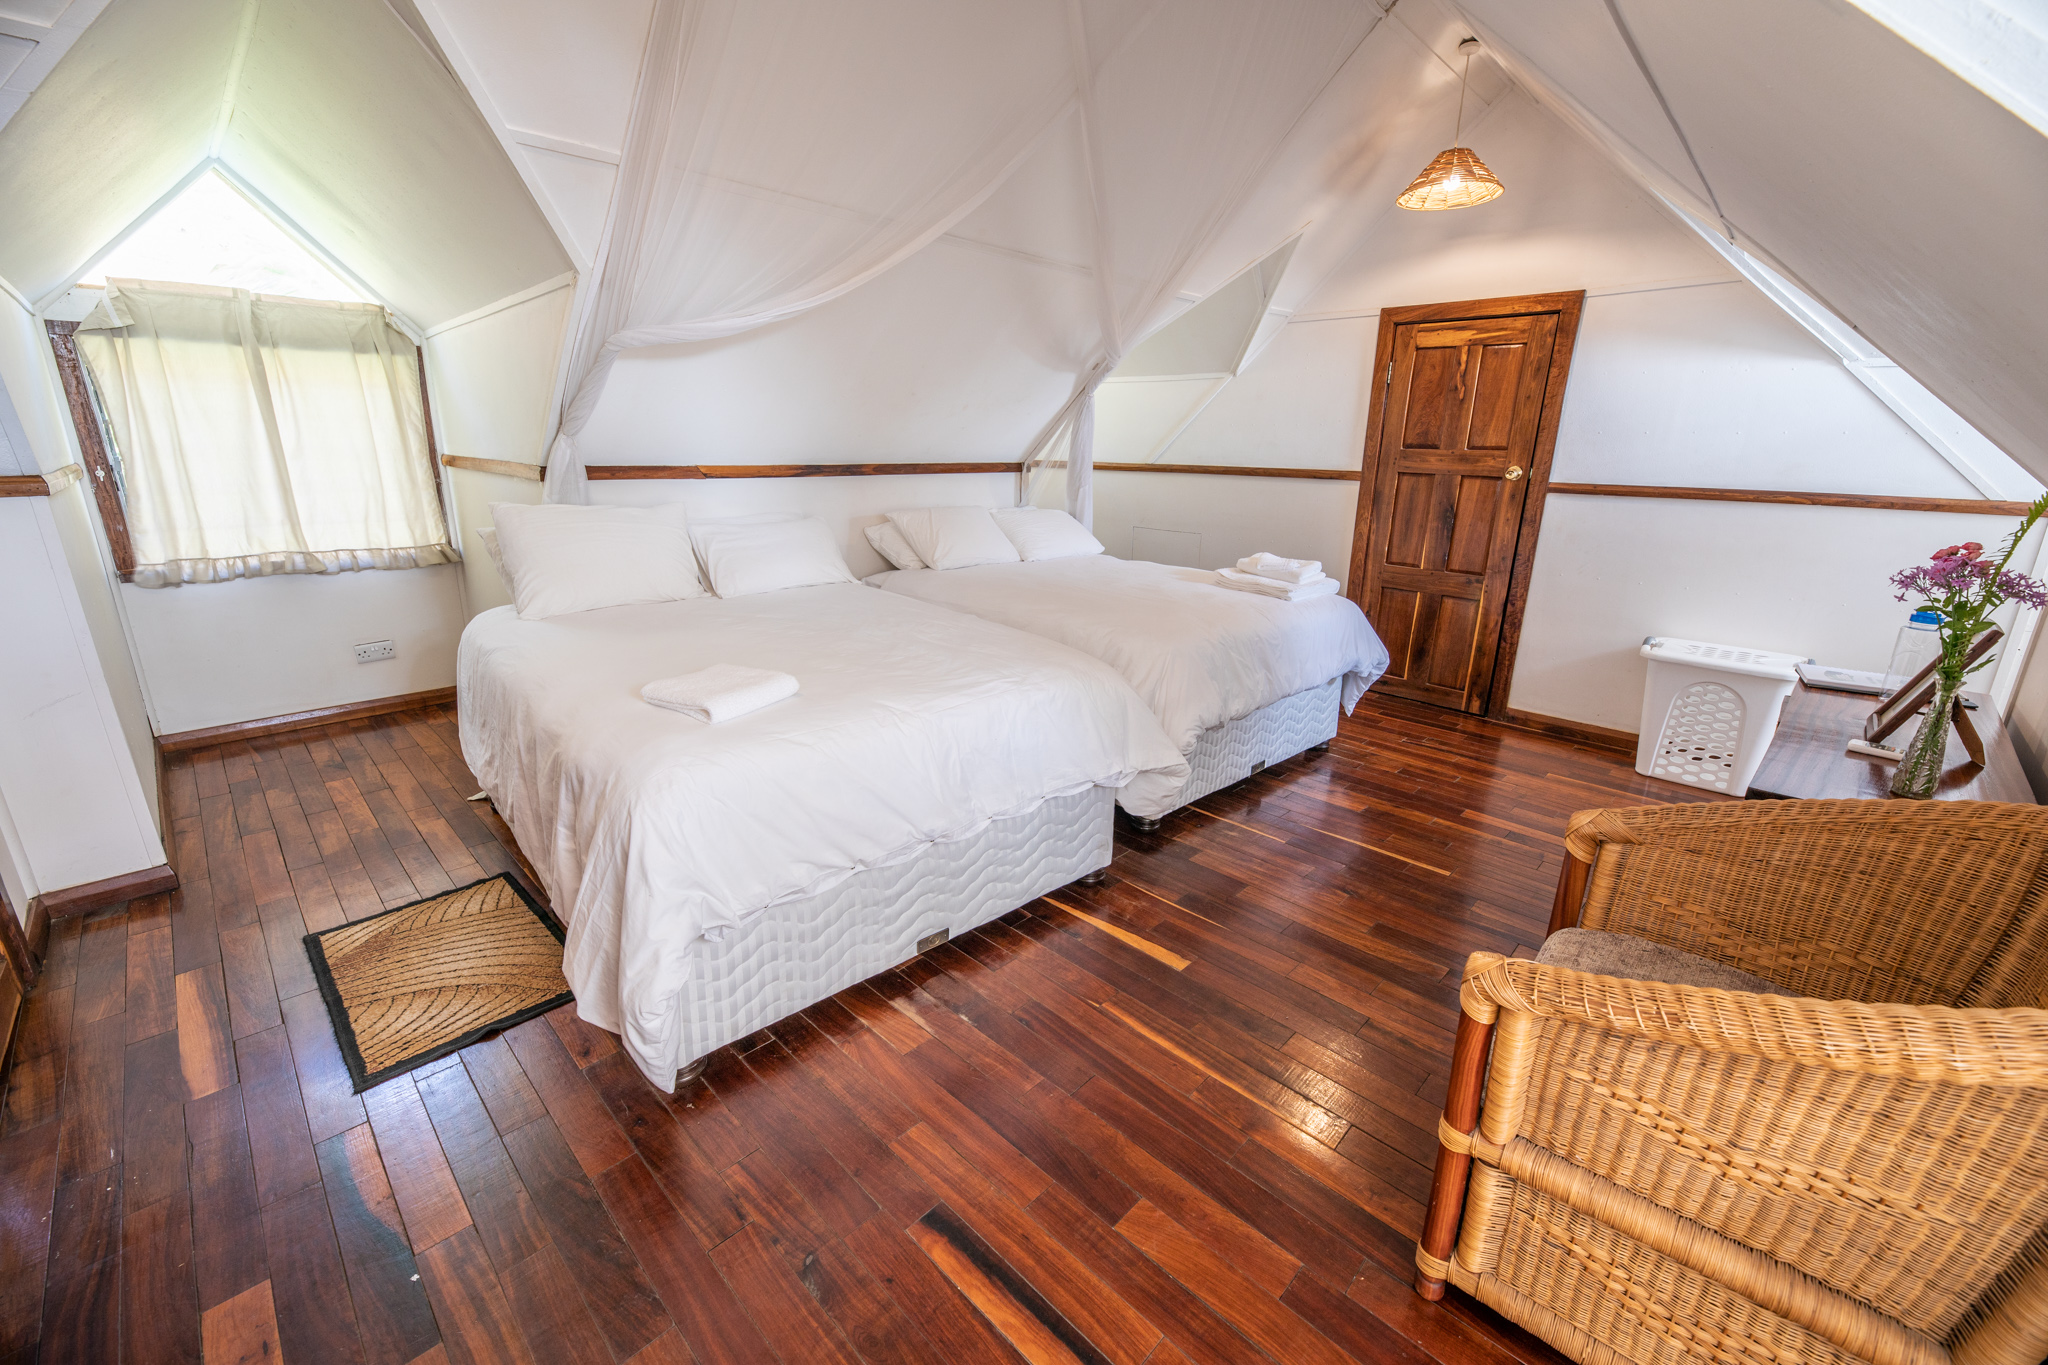 K8400 - Spacious rooms in our Wellness Lodge include a private bath, air conditioning, and housekeeping services.